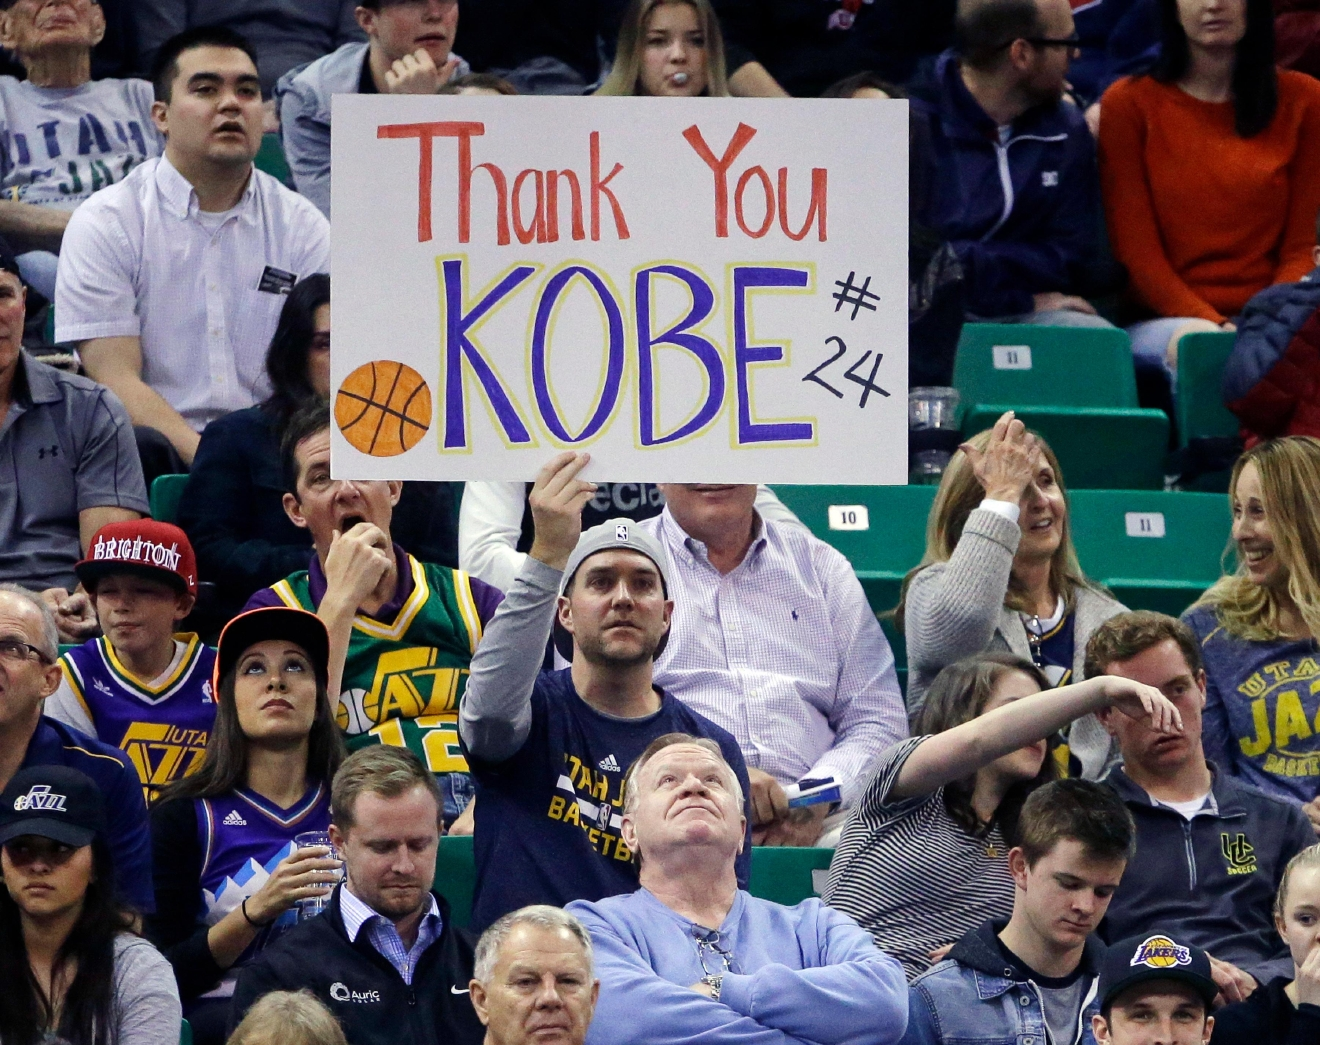 A fan holds a sign for Los Angeles Lakers forward Kobe Bryant during the second quarter of an NBA basketball game against the Utah Jazz on Monday, March 28, 2016, in Salt Lake City. (AP Photo/Rick Bowmer)